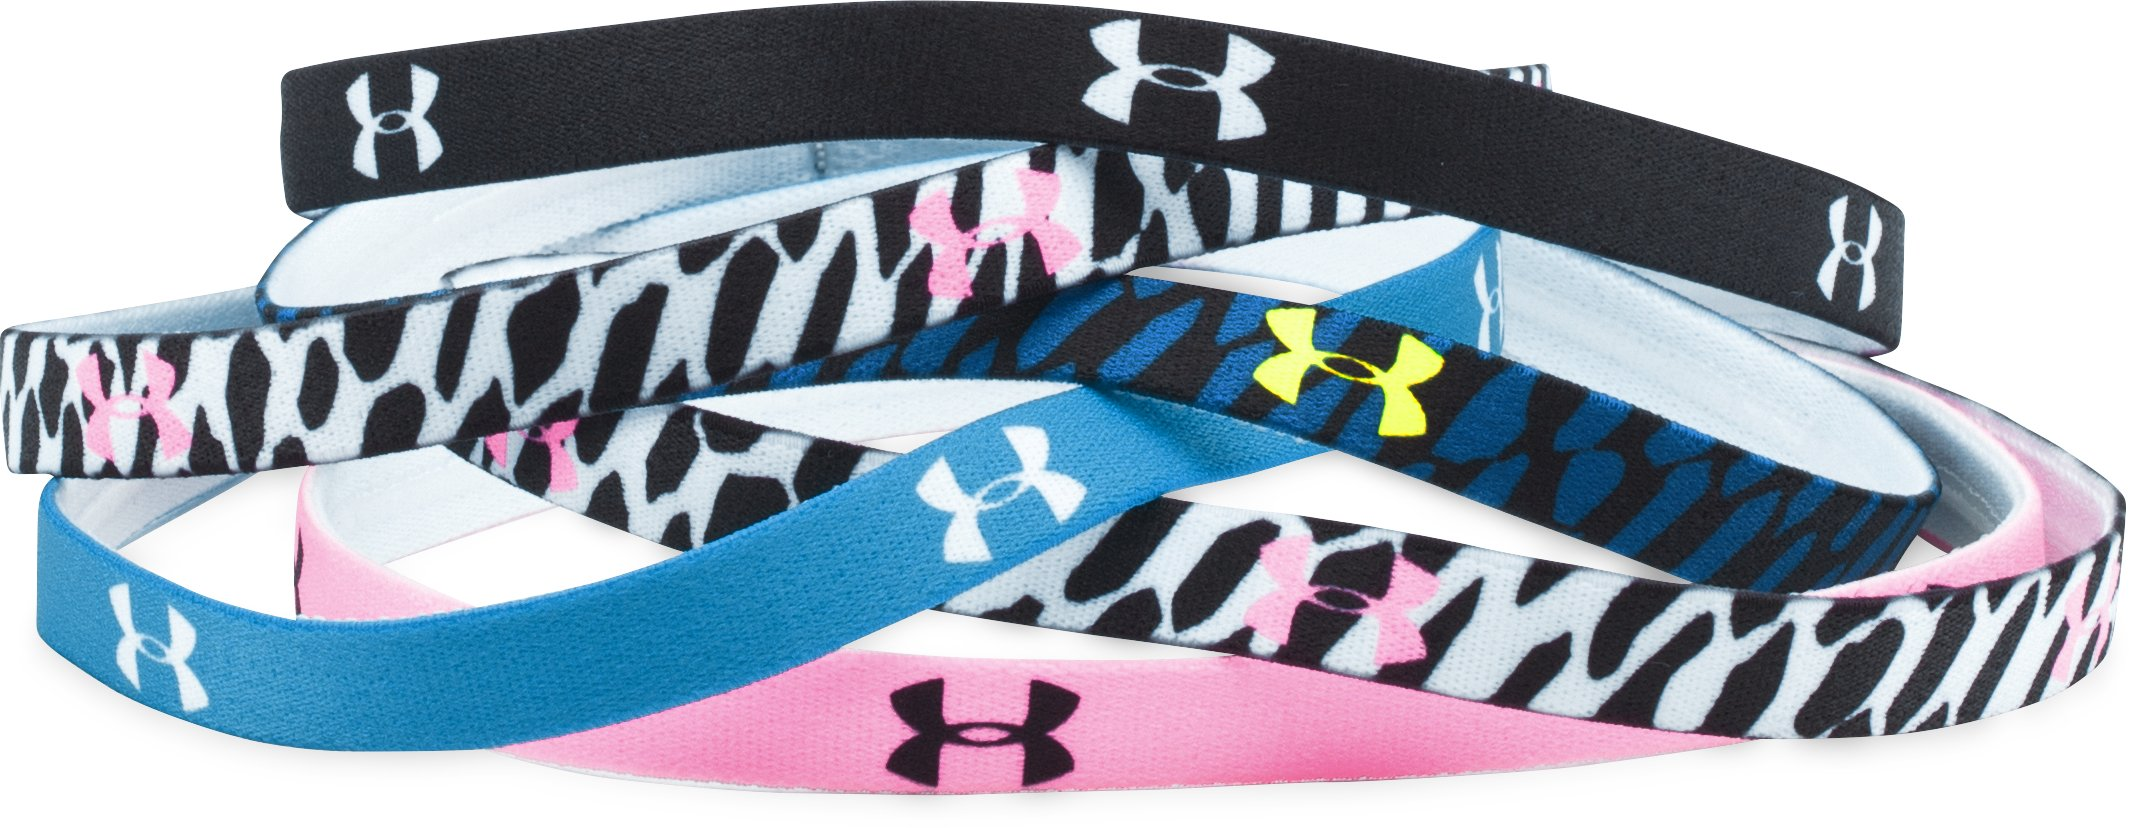 Women's UA Graphic Mini Headbands - 6 Pack, PINK CRAZE, zoomed image